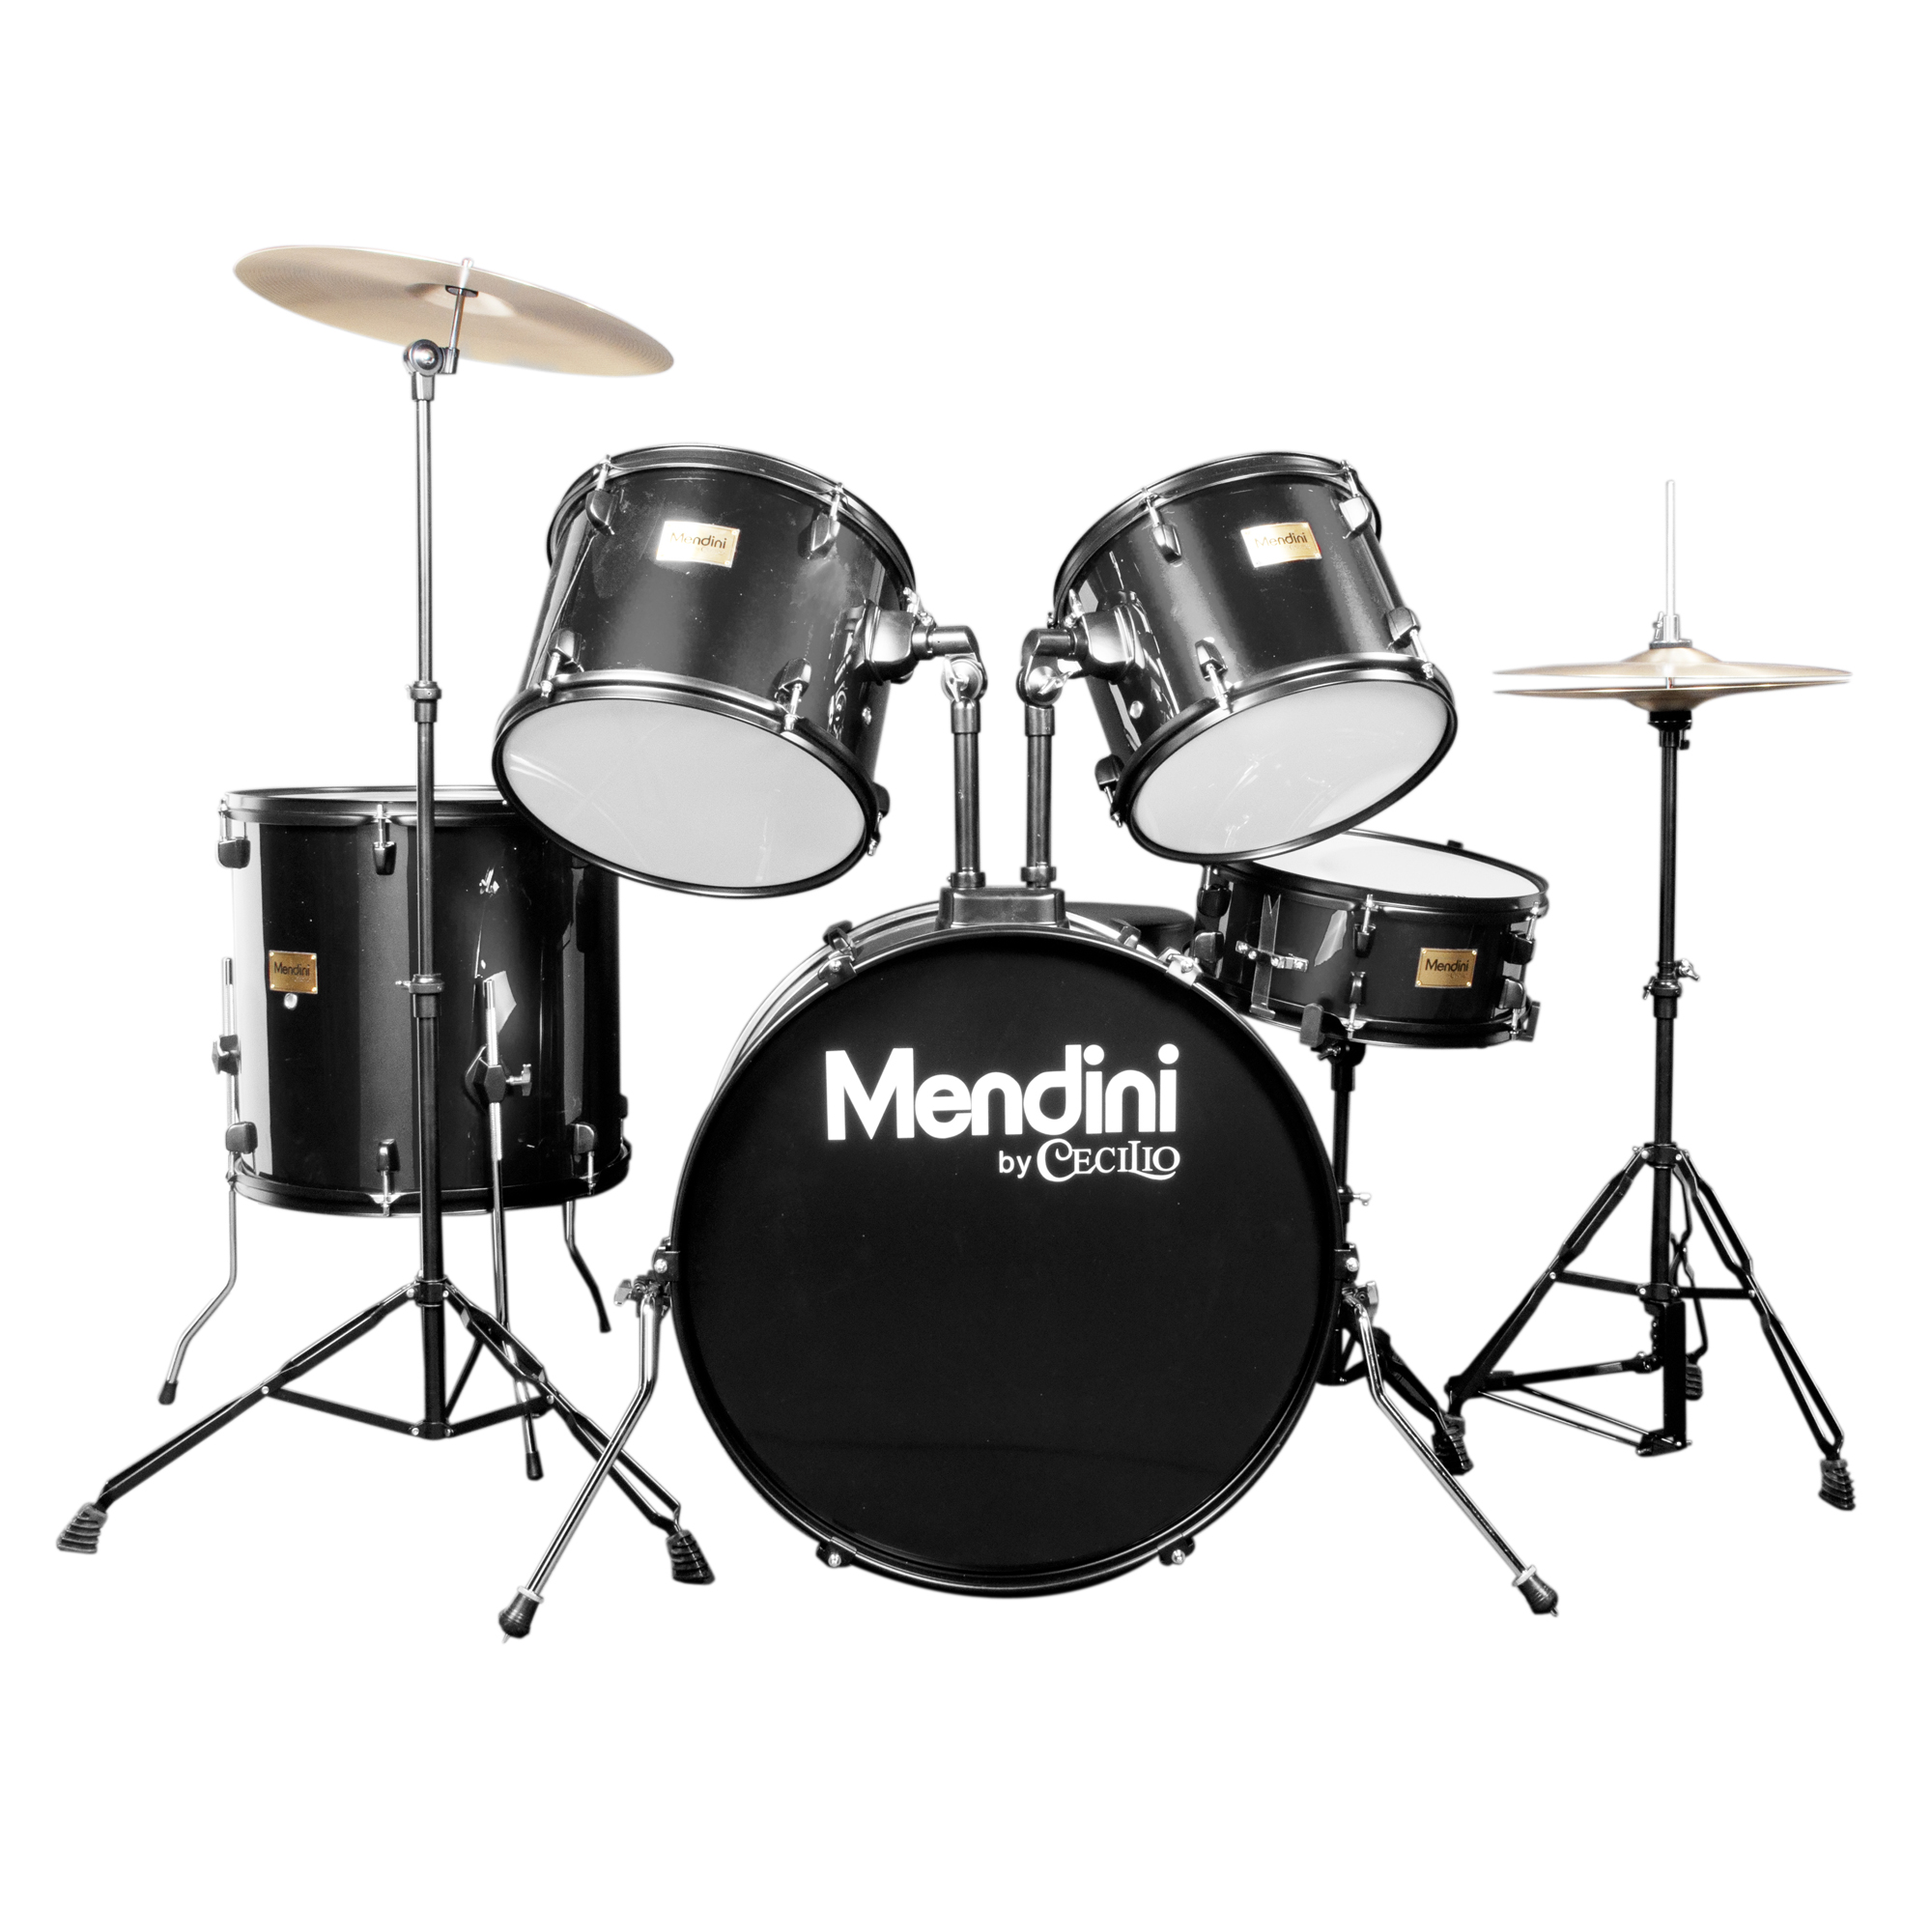 Mendini by Cecilio Complete Full Size 5-Piece Adult Drum Set w/ Cymbals Pedal Throne Sticks, Metallic Black MDS80-BK